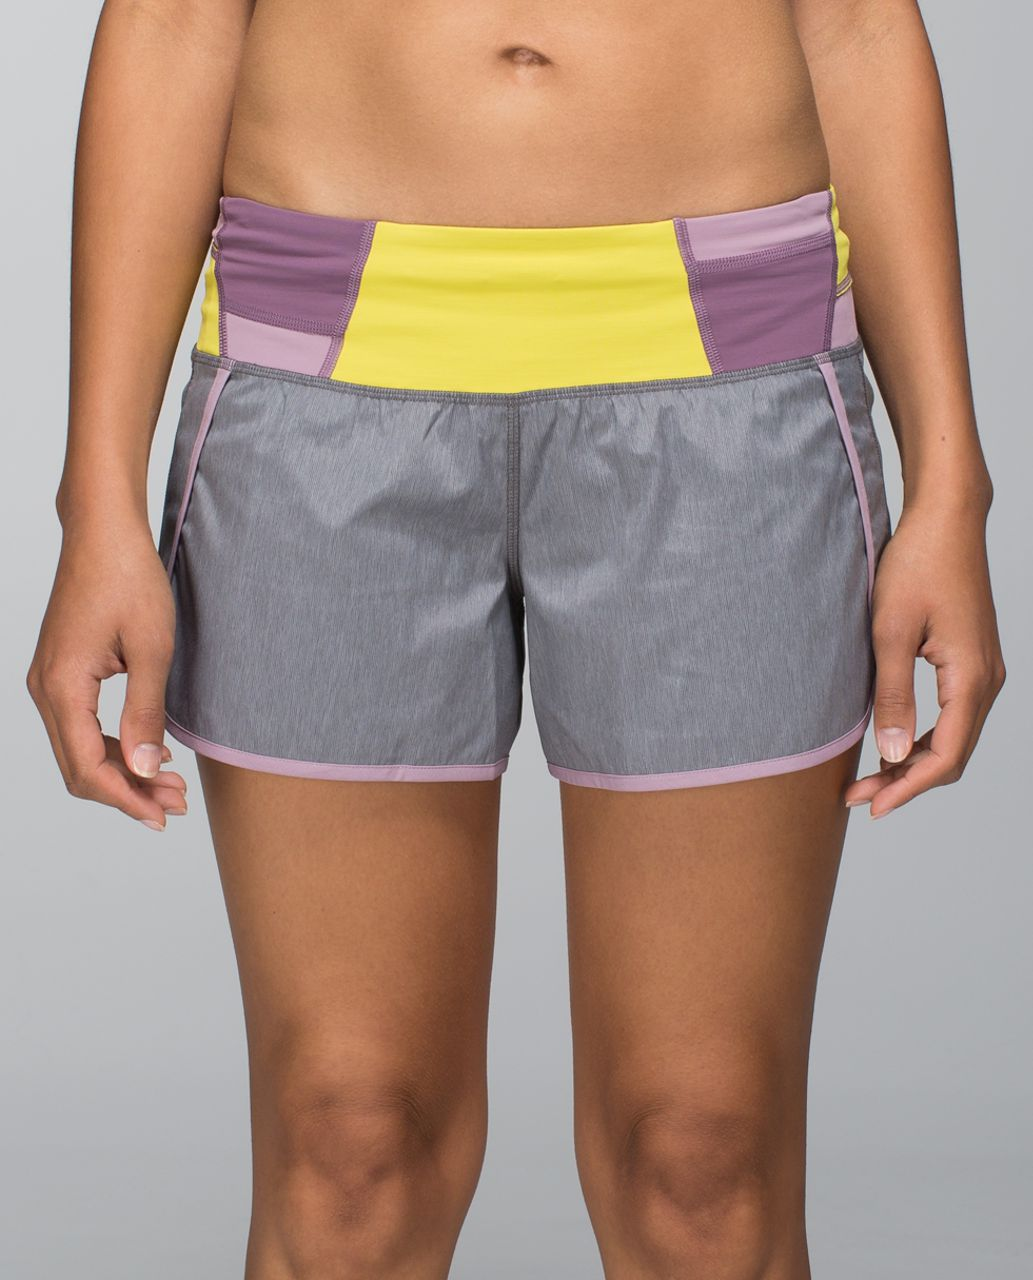 Lululemon Run Times Short *2-way Stretch - Heathered Slate / Mauvelous / Fa14 Quilt 27